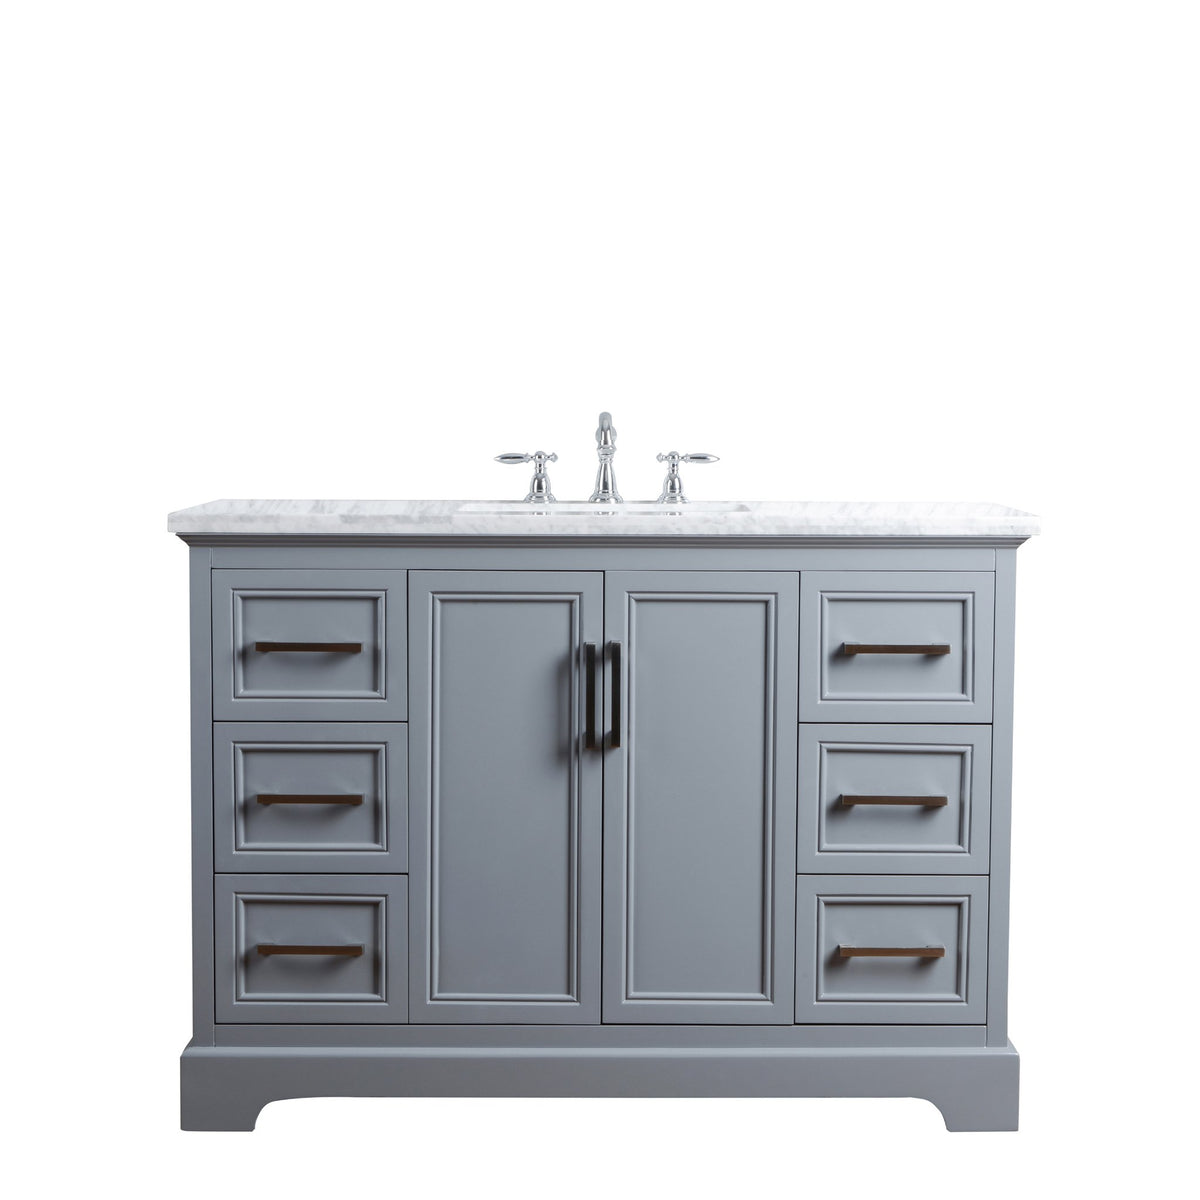 Bathroom Vanity 46 Inches Wide